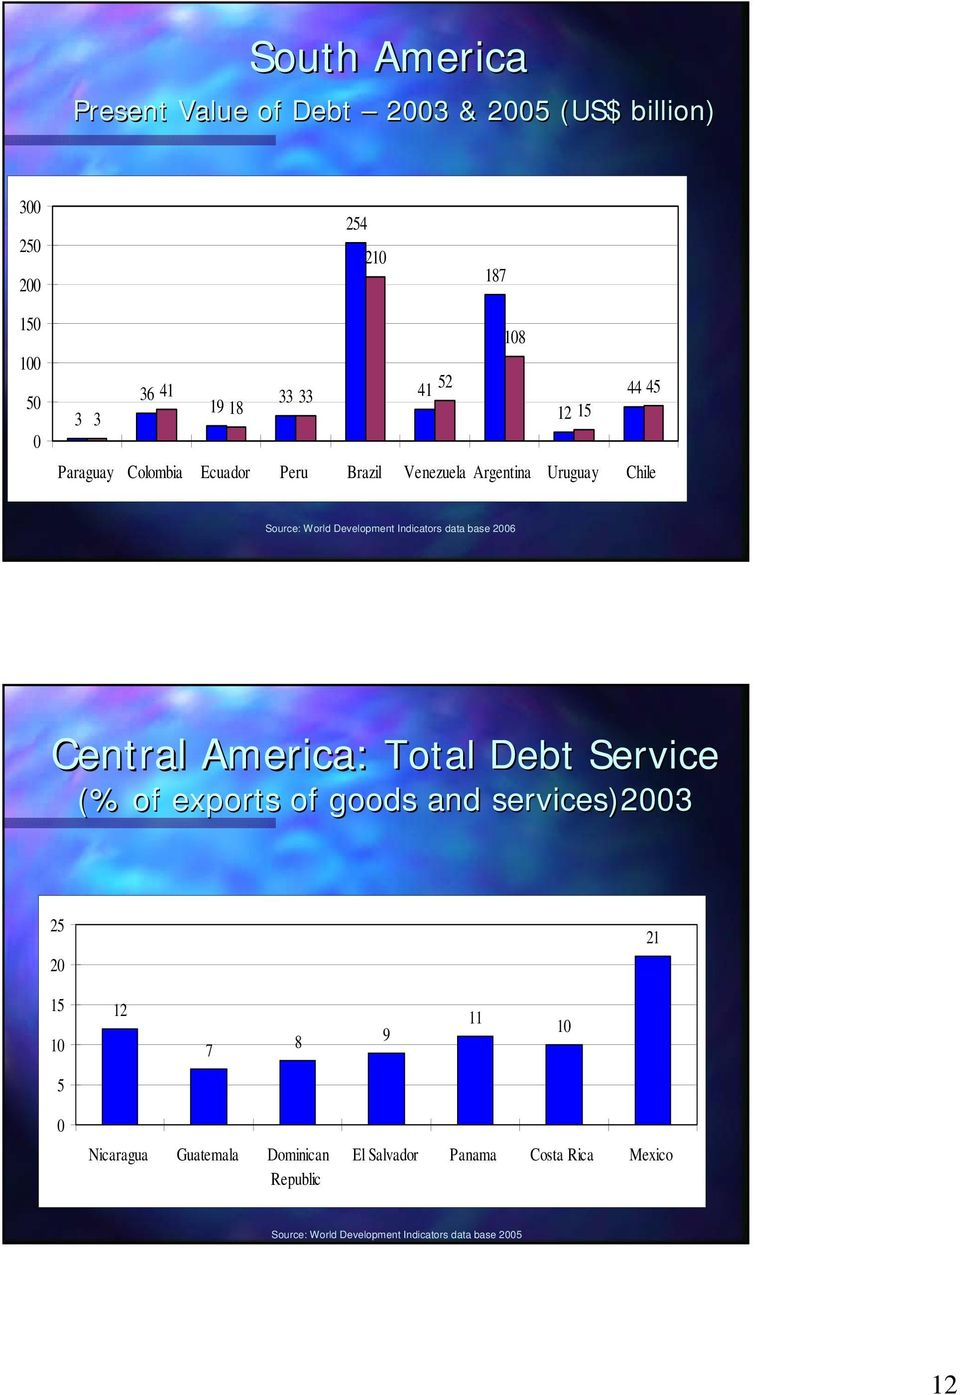 data base 26 Central America: Total Debt Service (% of exports of goods and services)23 25 2 21 15 12 7 8 9 11 5